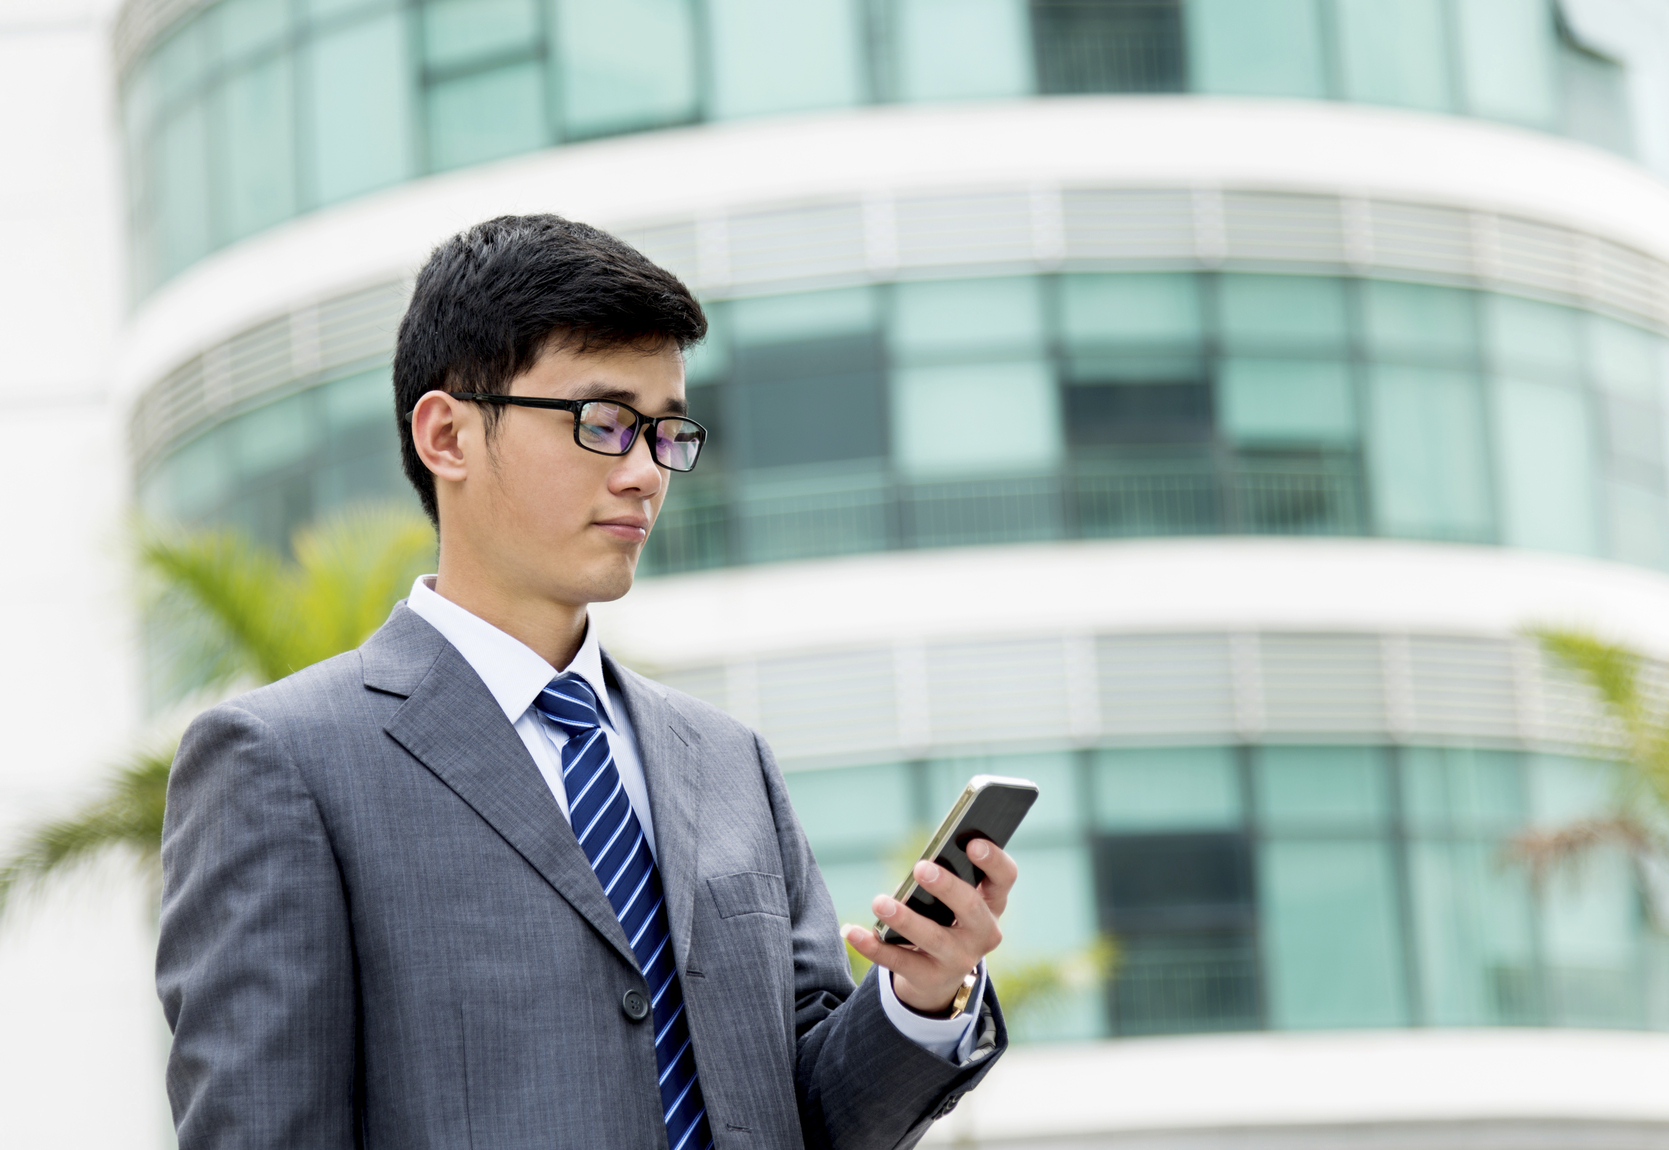 Stock photo of a businessman looking at his phone